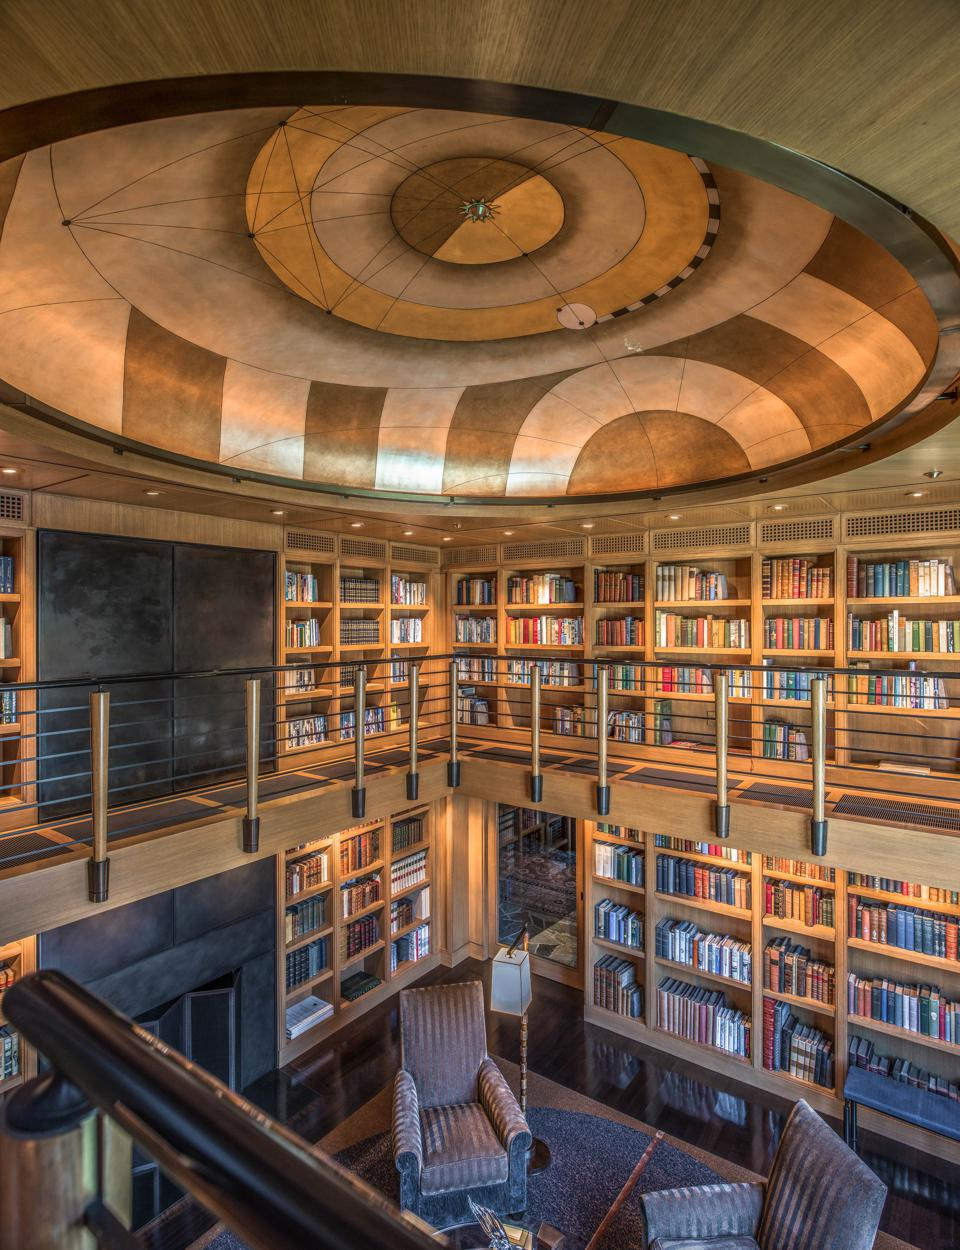 SevenCoves Lodge Library With Kepler-inspired ceiling